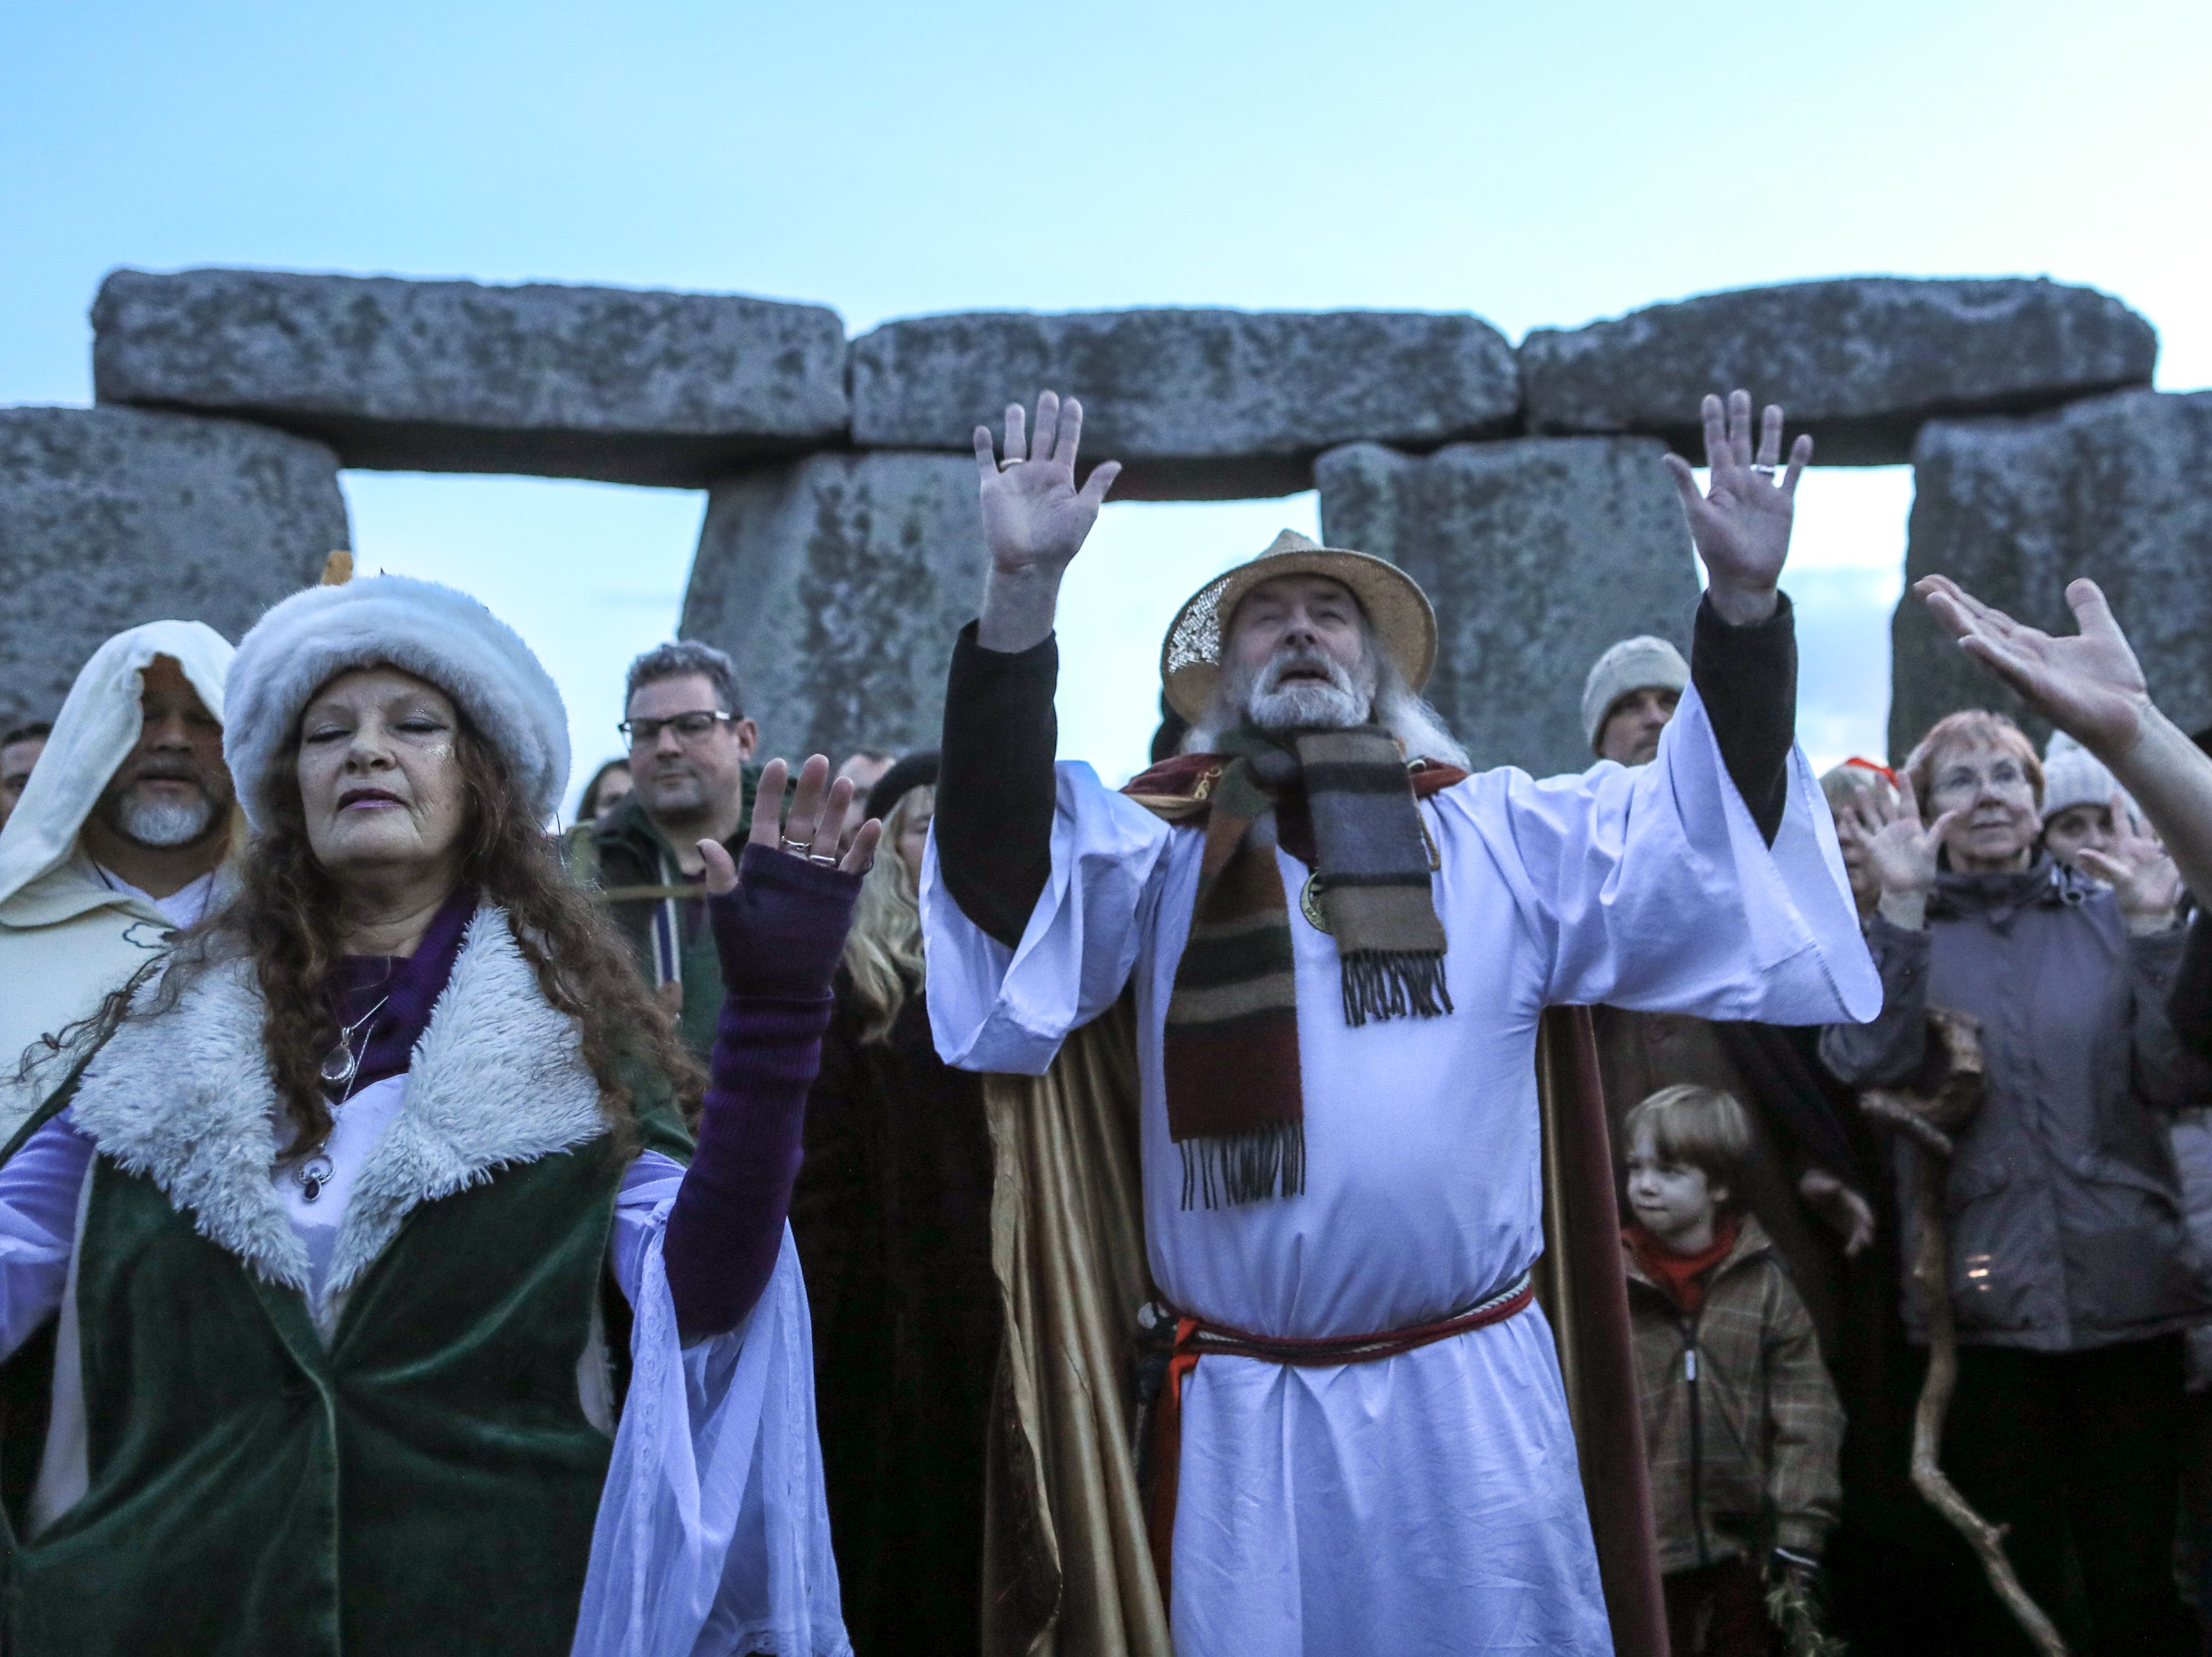 Rollo Maughfling, Archdruid of Stonehenge and Britain conducts as ceremony as druids, pagans and revelers gather in the centre of Stonehenge, hoping to see the sun rise, as they take part in a winter solstice ceremony.